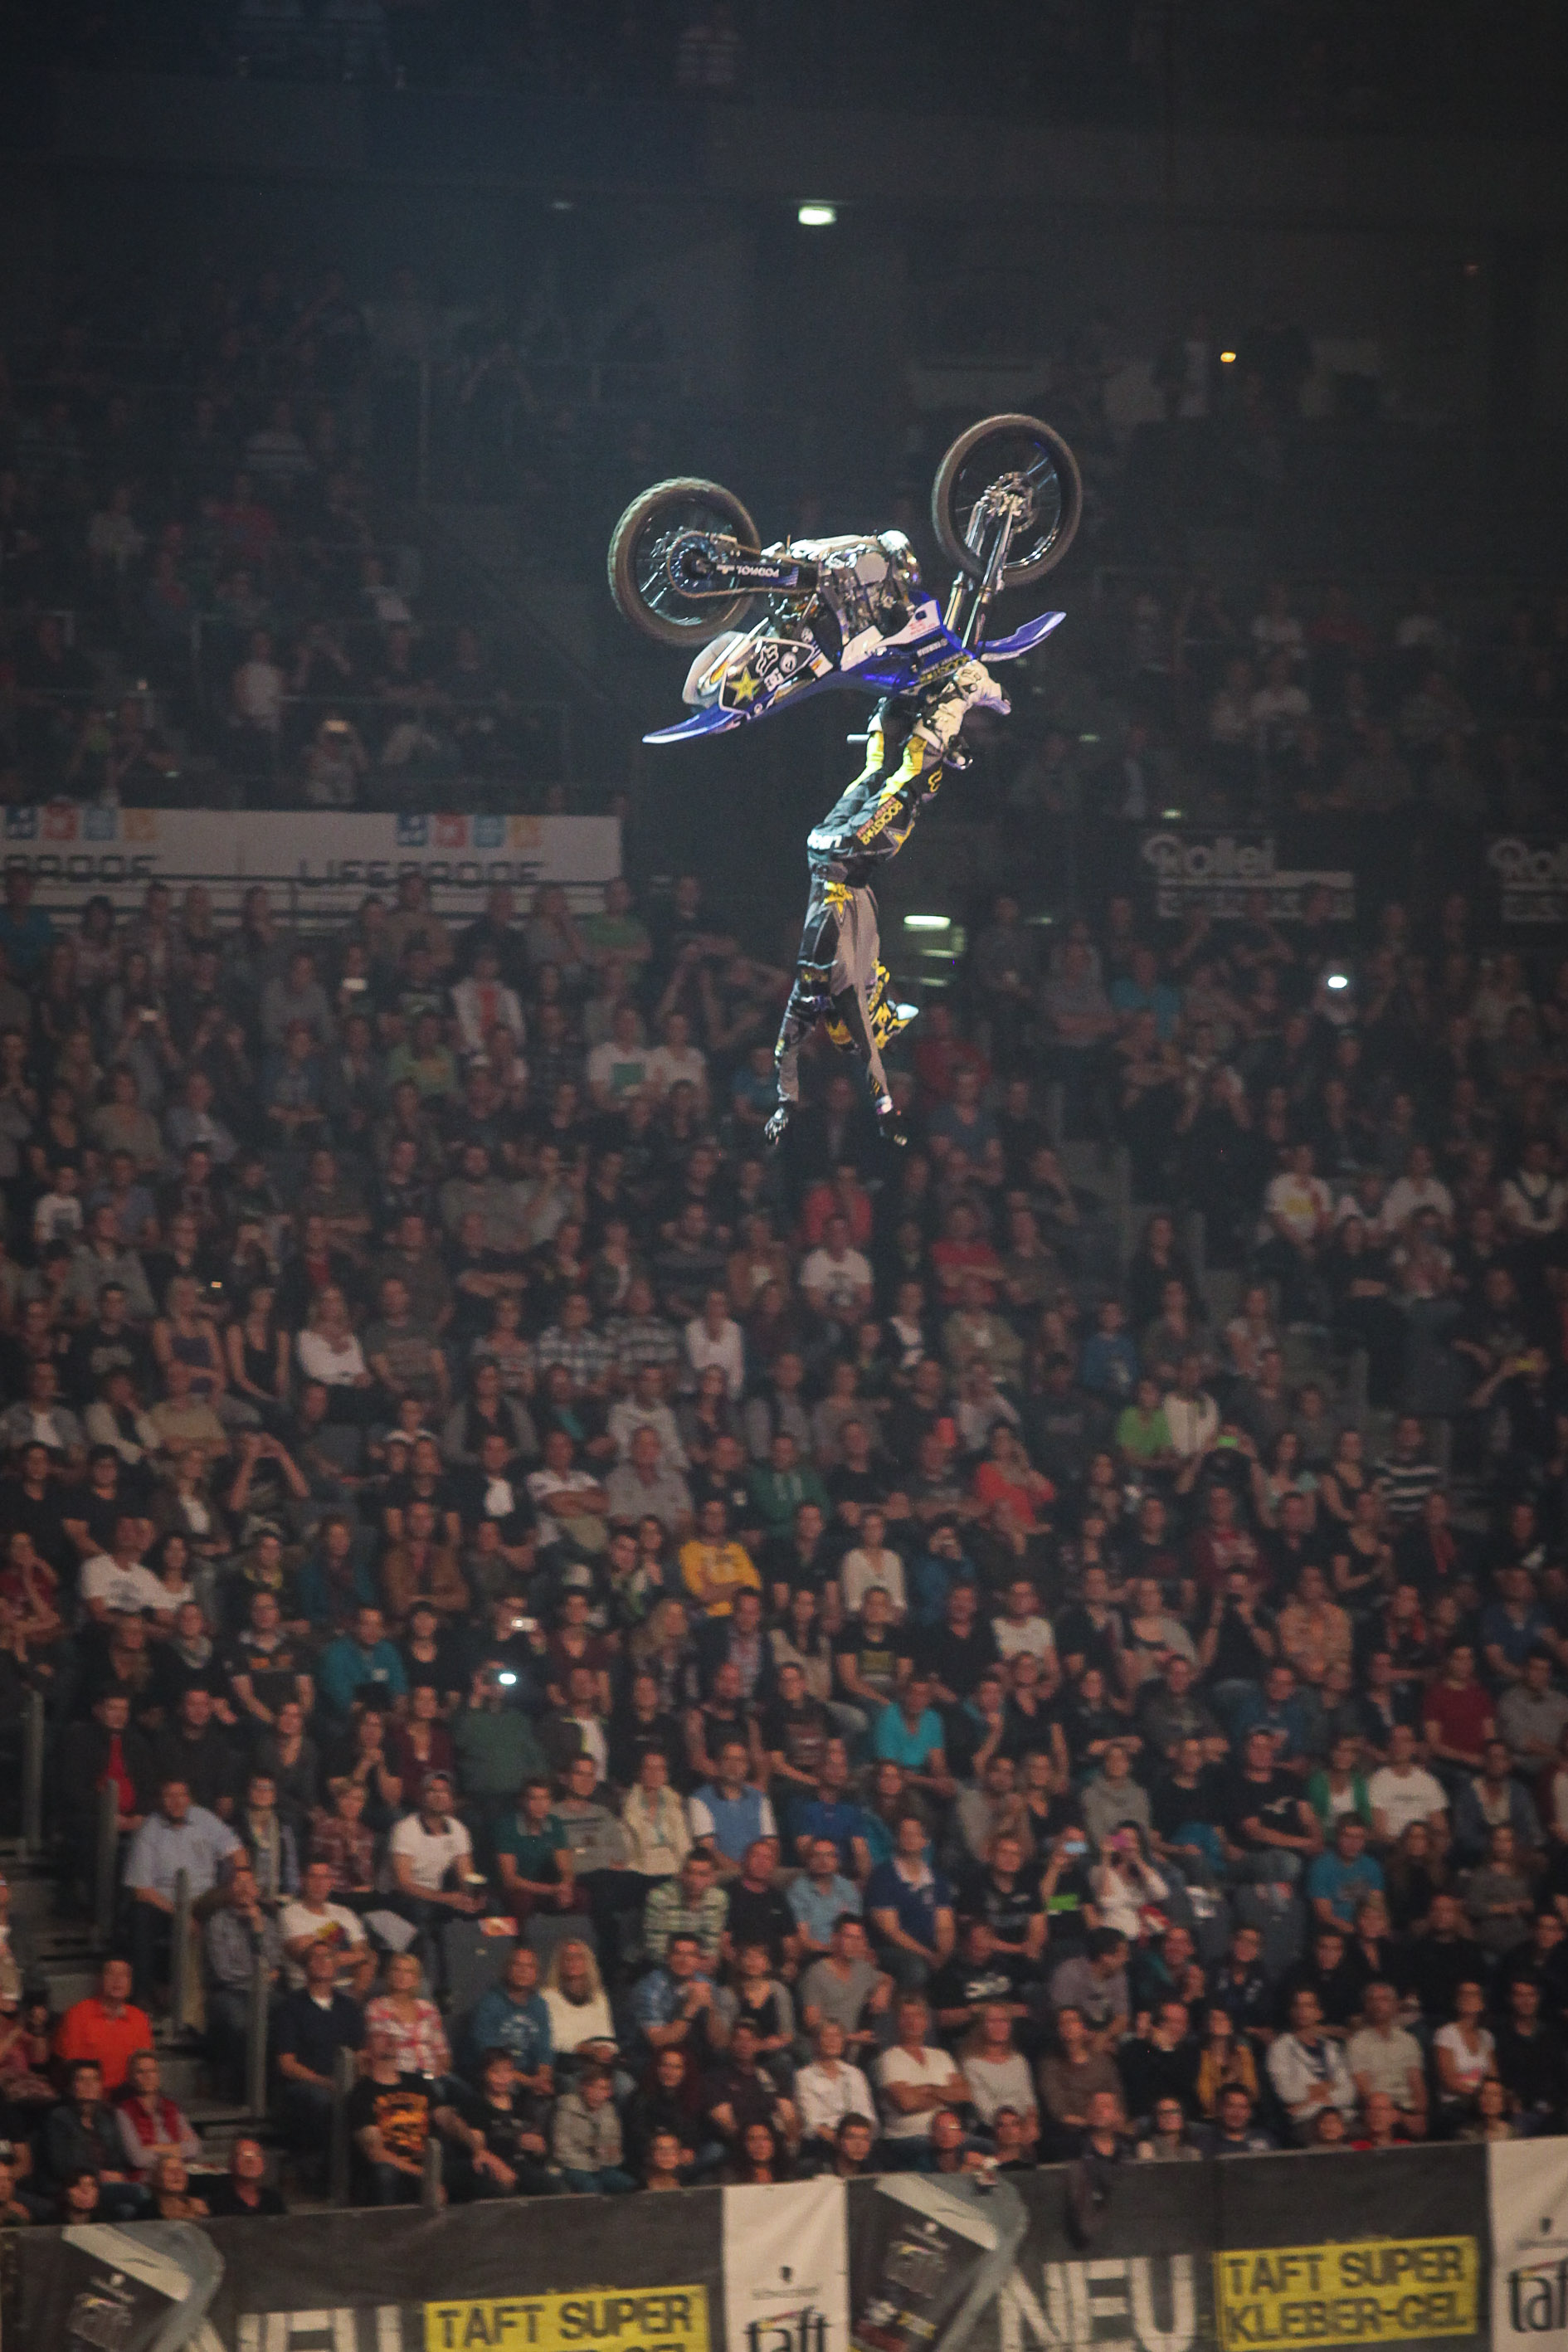 Foto: Oliver Franke / NIGHT of the JUMPs